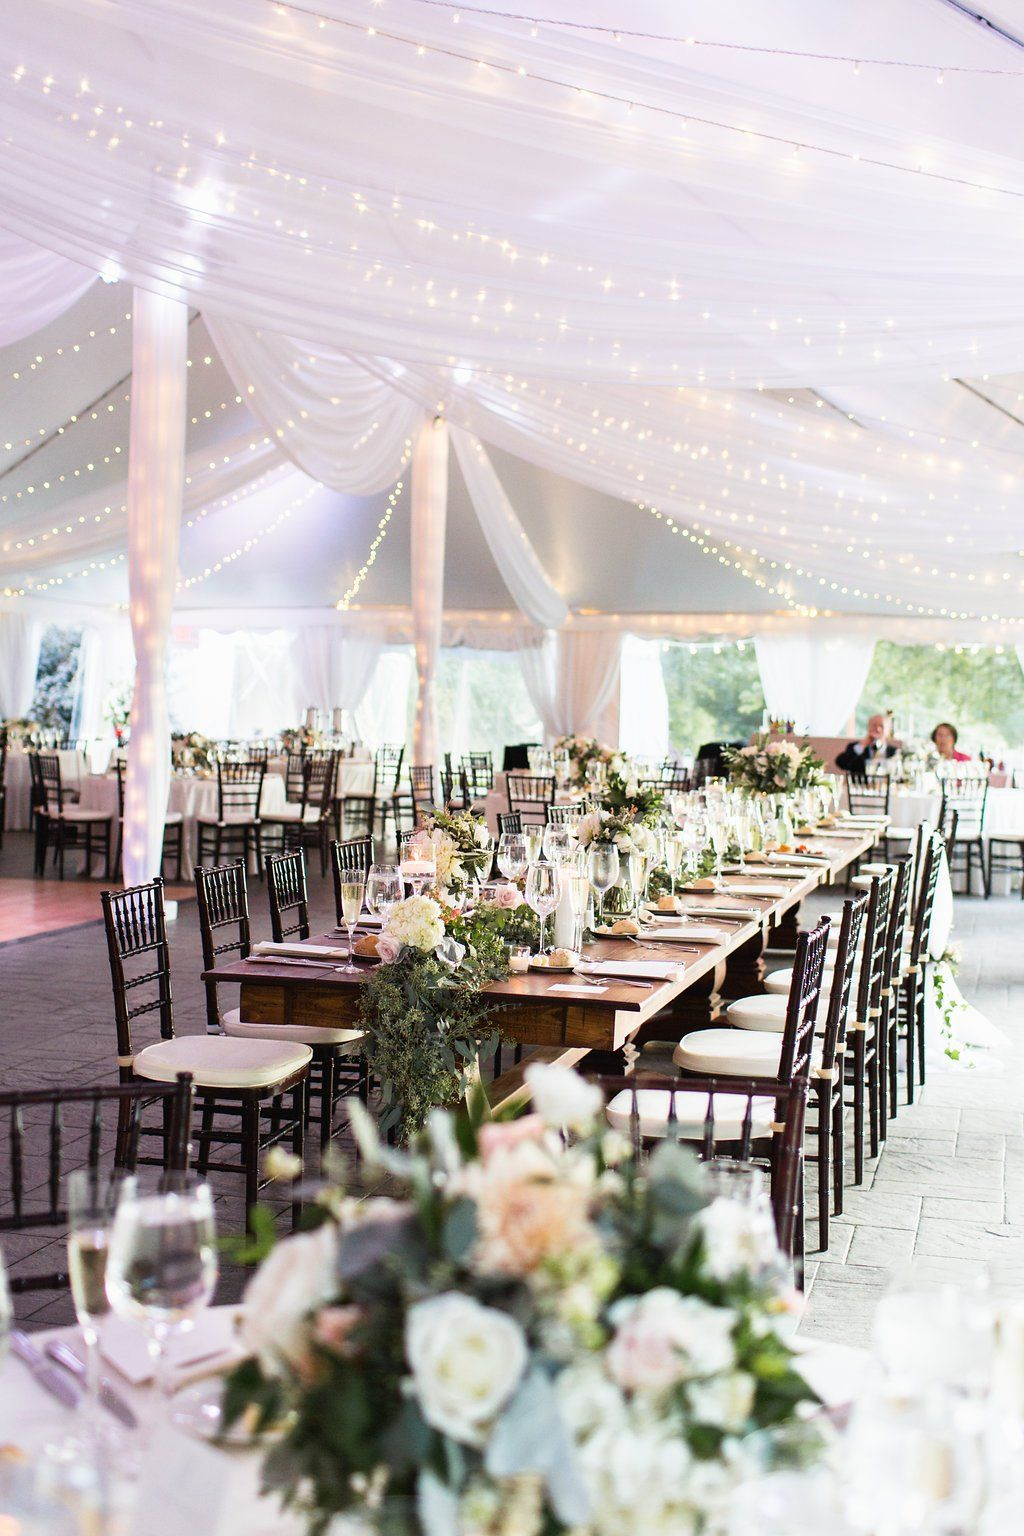 Sparkling Tent Wedding Decor With Fairy Lights And Trailing Greens On The Newport Bride Outdoor Wedding Reception Tent Outdoor Fall Wedding Wedding Tent Layout